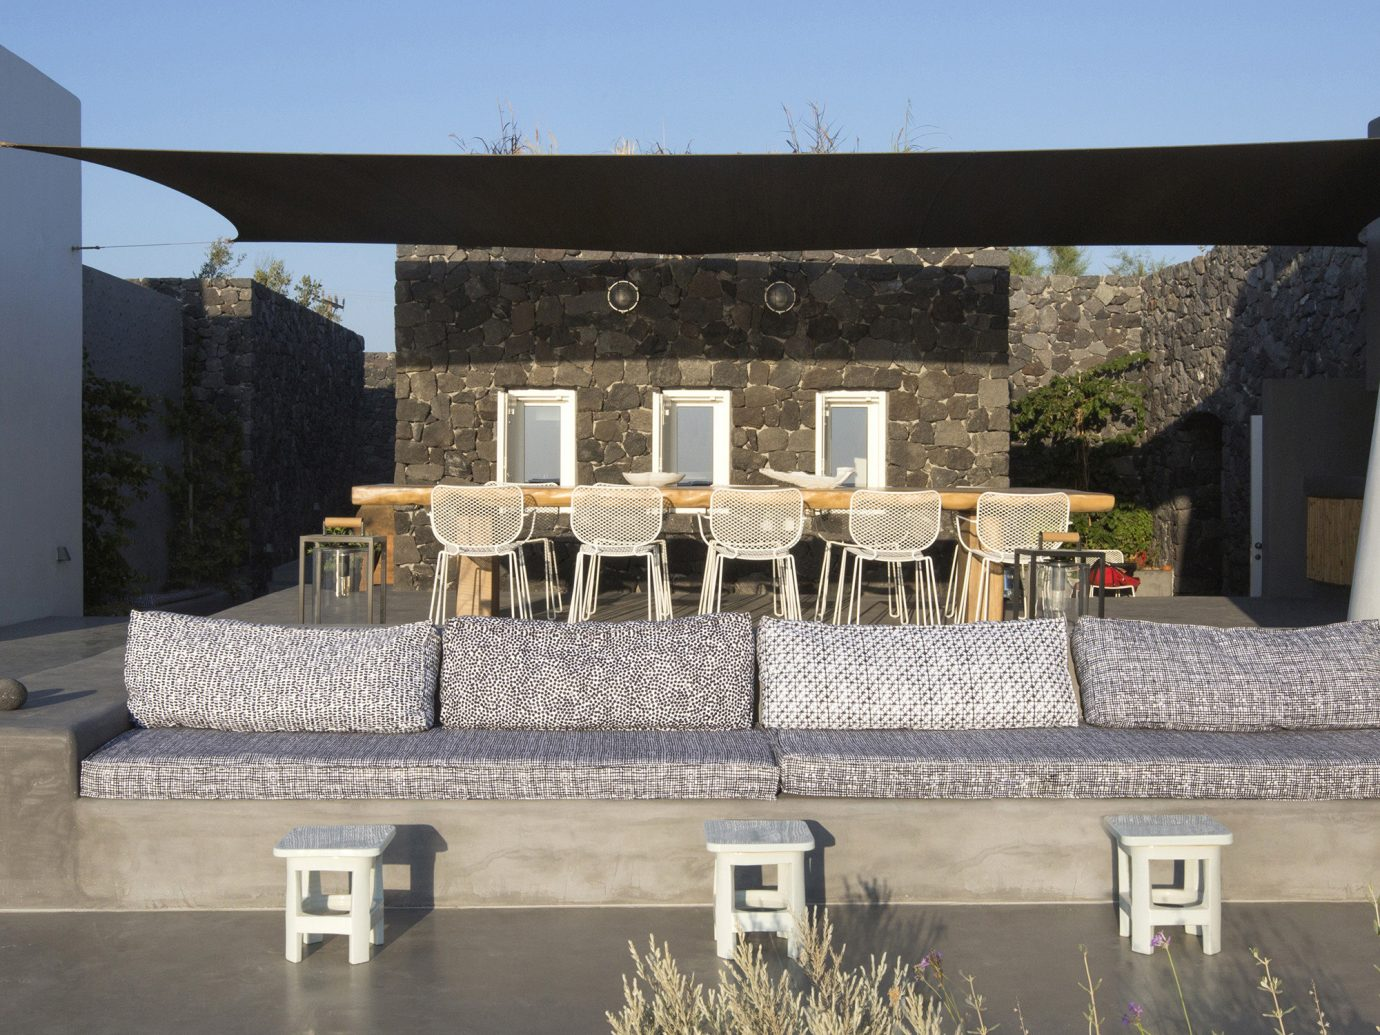 Greece Hotels Santorini sky outdoor property Architecture outdoor structure house Patio facade cement